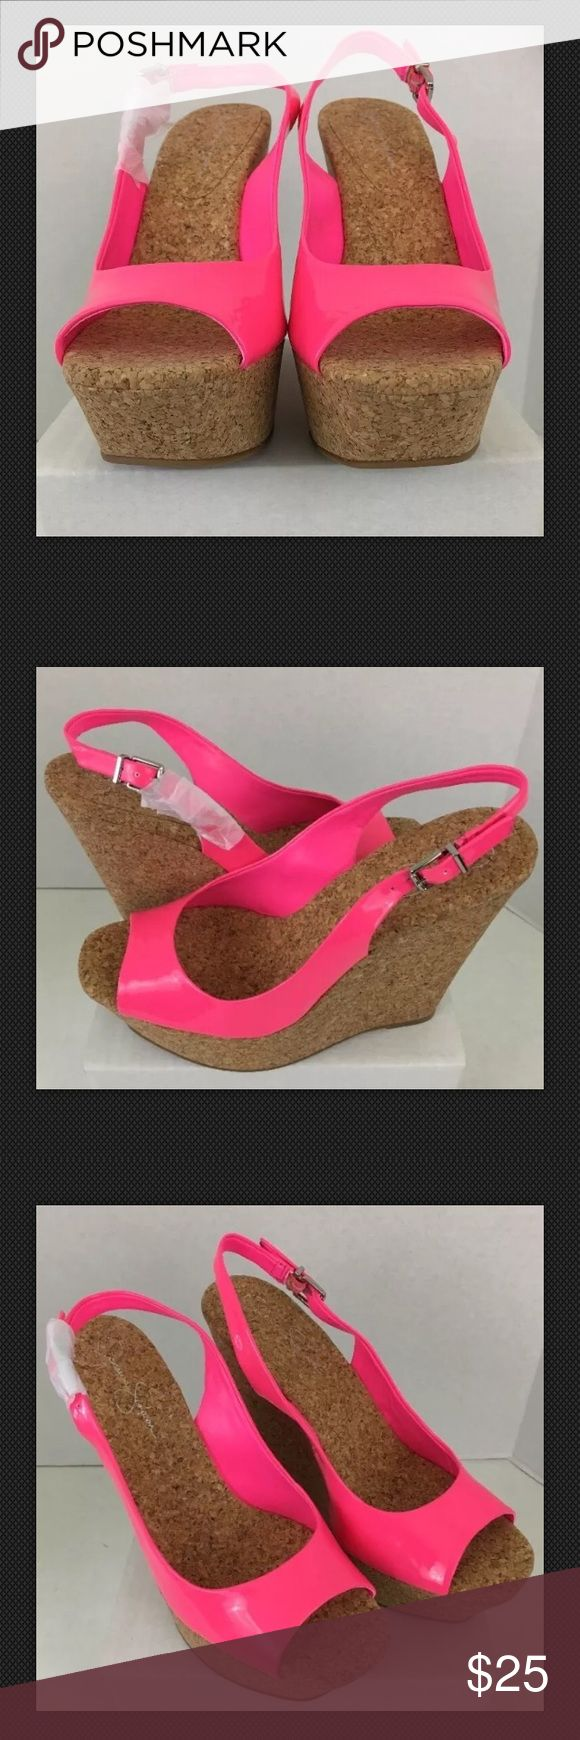 Jessica Simpson Amanda Cork Wedge Heel Slingback Jessica Simpson Amanda Cork Wedge Heel Hot Pink Slingback Peep Toe size 9.5B. Good preowned Condition minor signs of wear some scuffs. Jessica Simpson Shoes Heels